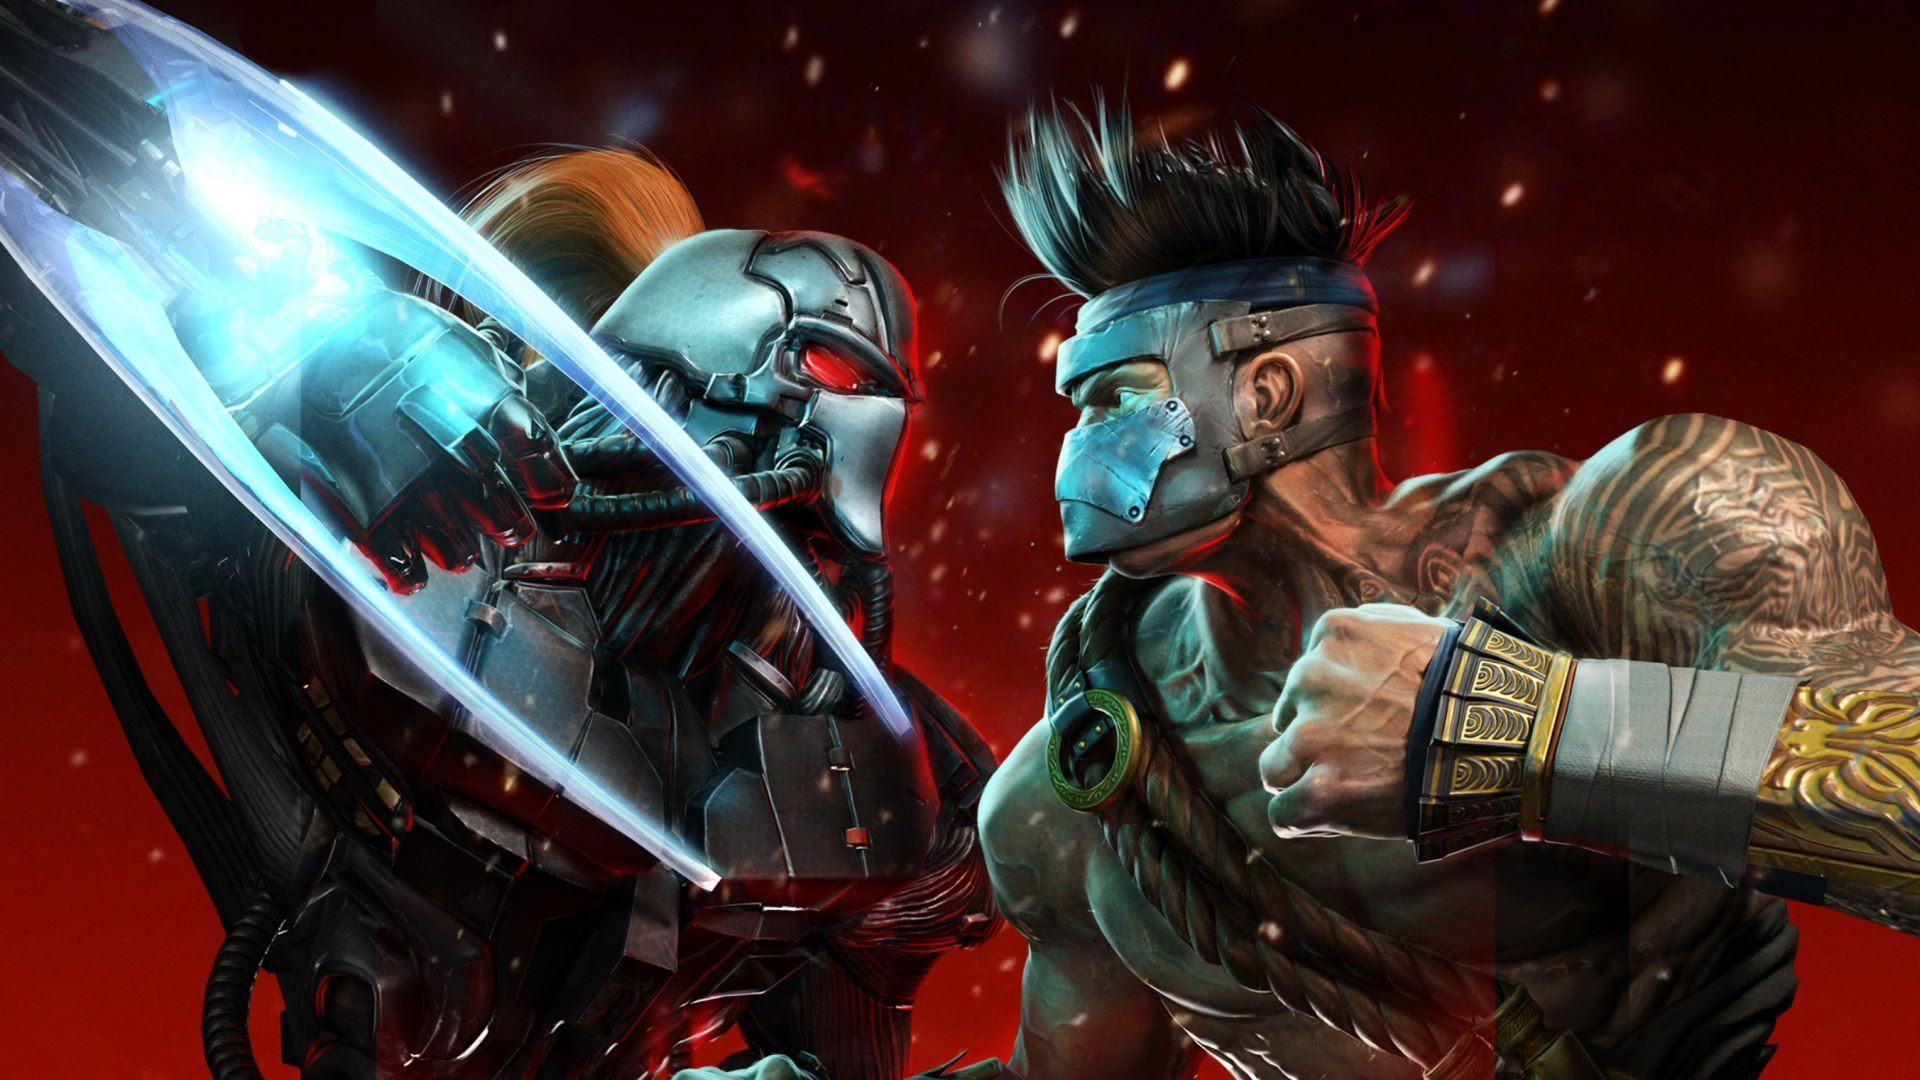 Killer Instinct appeared in the shop Windows Store two days ago, but again not without mishaps. Problems refresh the data synchronization between the PC and the console does not encourage a new service from Microsoft. - High update Windows 10 will introduce new features for gamers - news - 2016-03-31